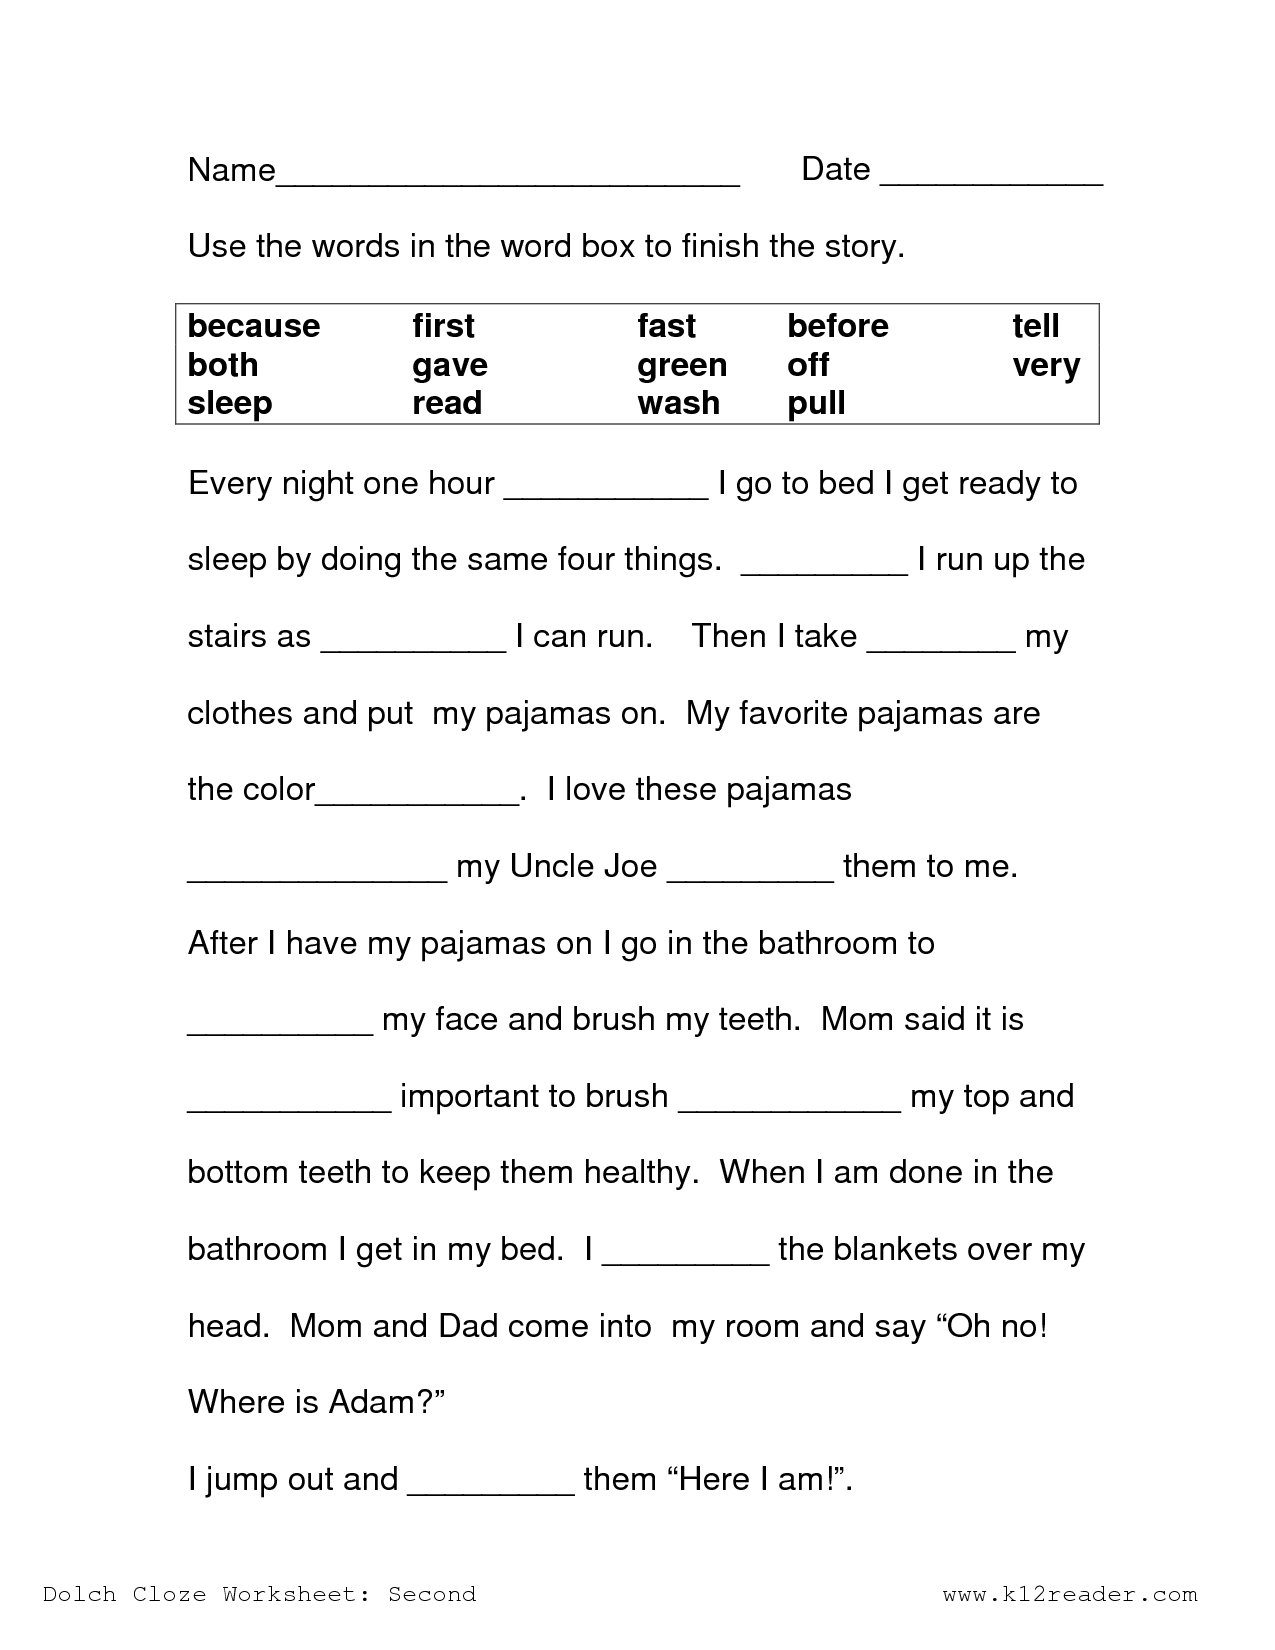 Worksheet Short Stories For Third Grade worksheet reading comprehension story mikyu free second grade stories short with questions 3rd life science graders as well struggling third who can r